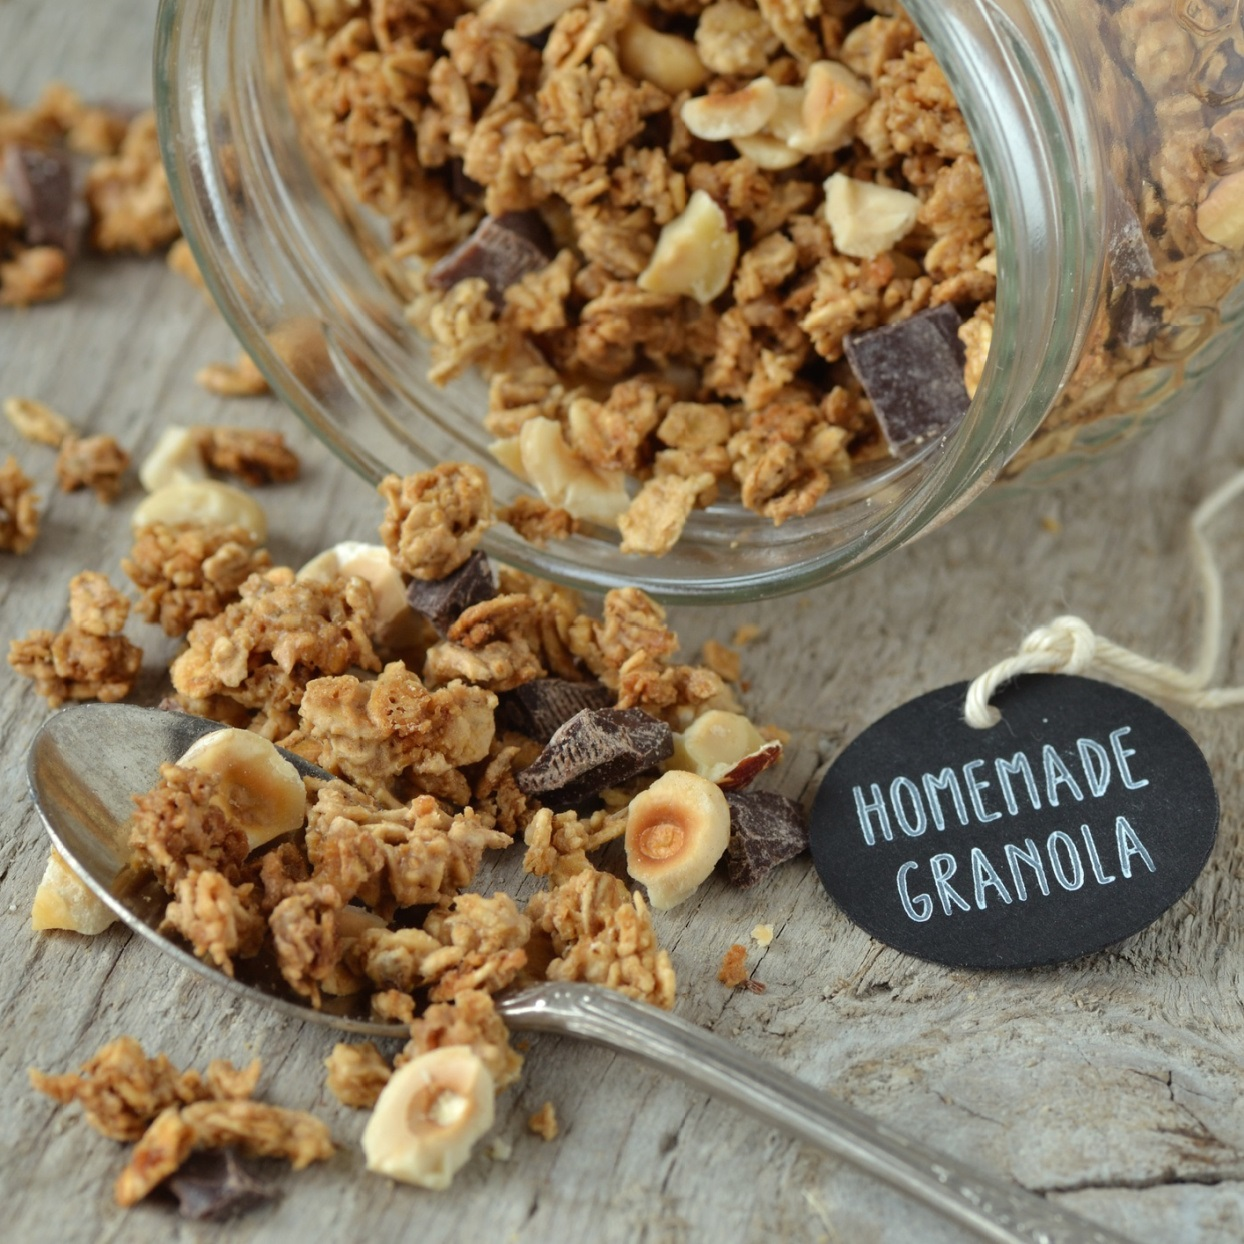 homemade granola spilling out of a jar